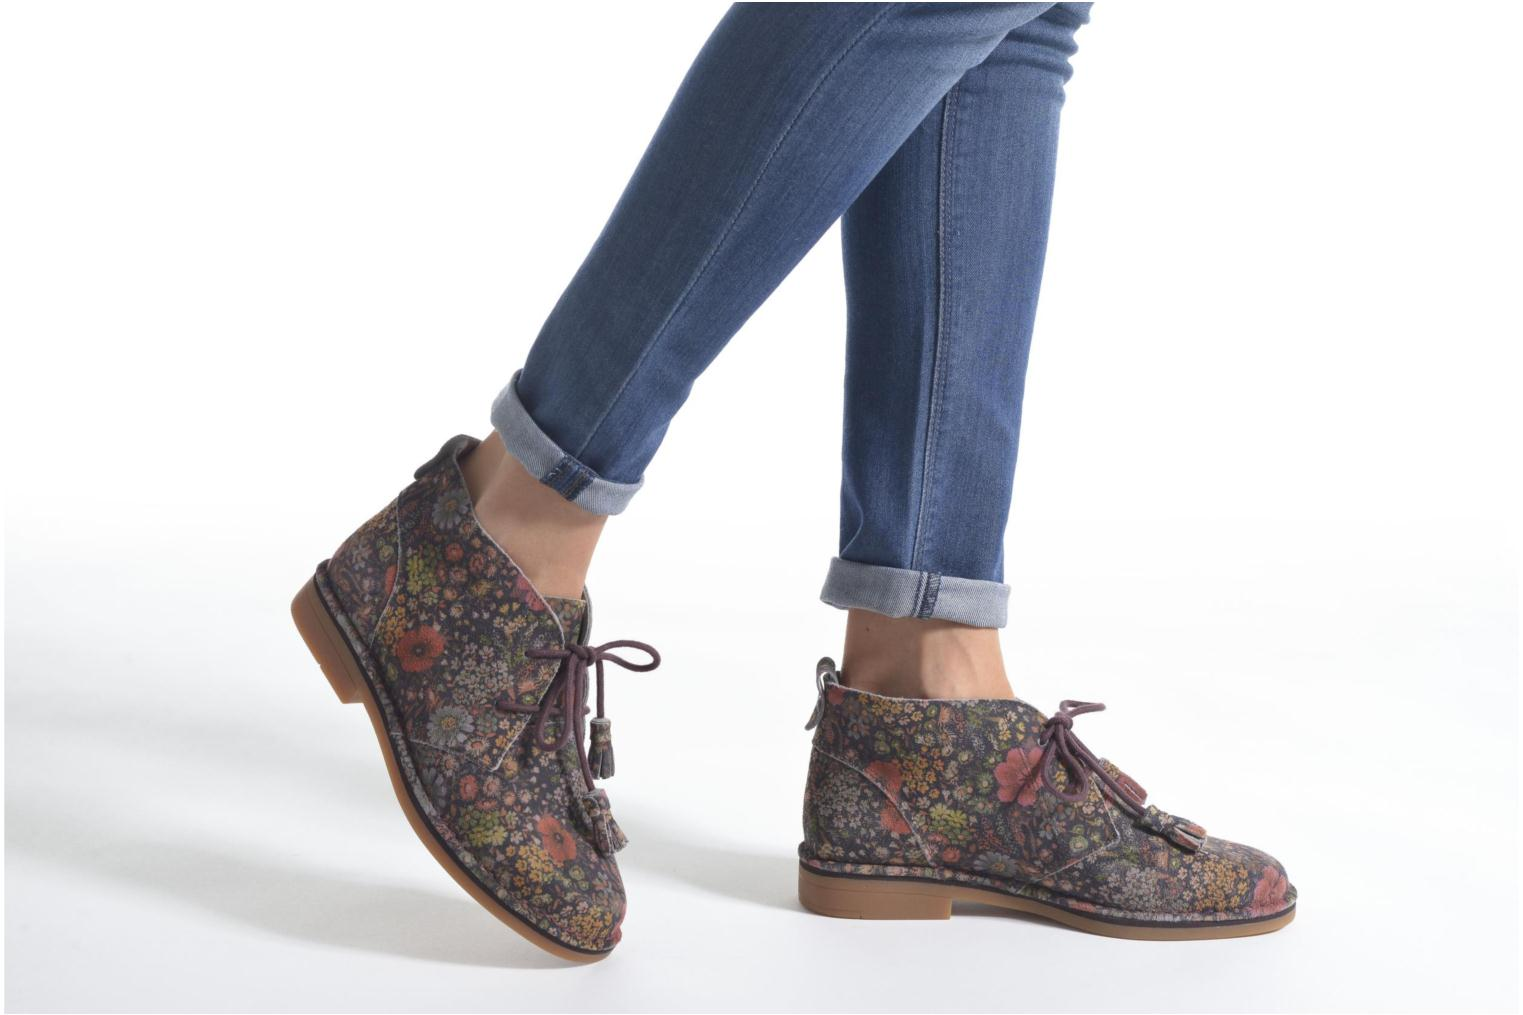 Bottines et boots Hush Puppies Cyra Catelyn Multicolore vue bas / vue portée sac